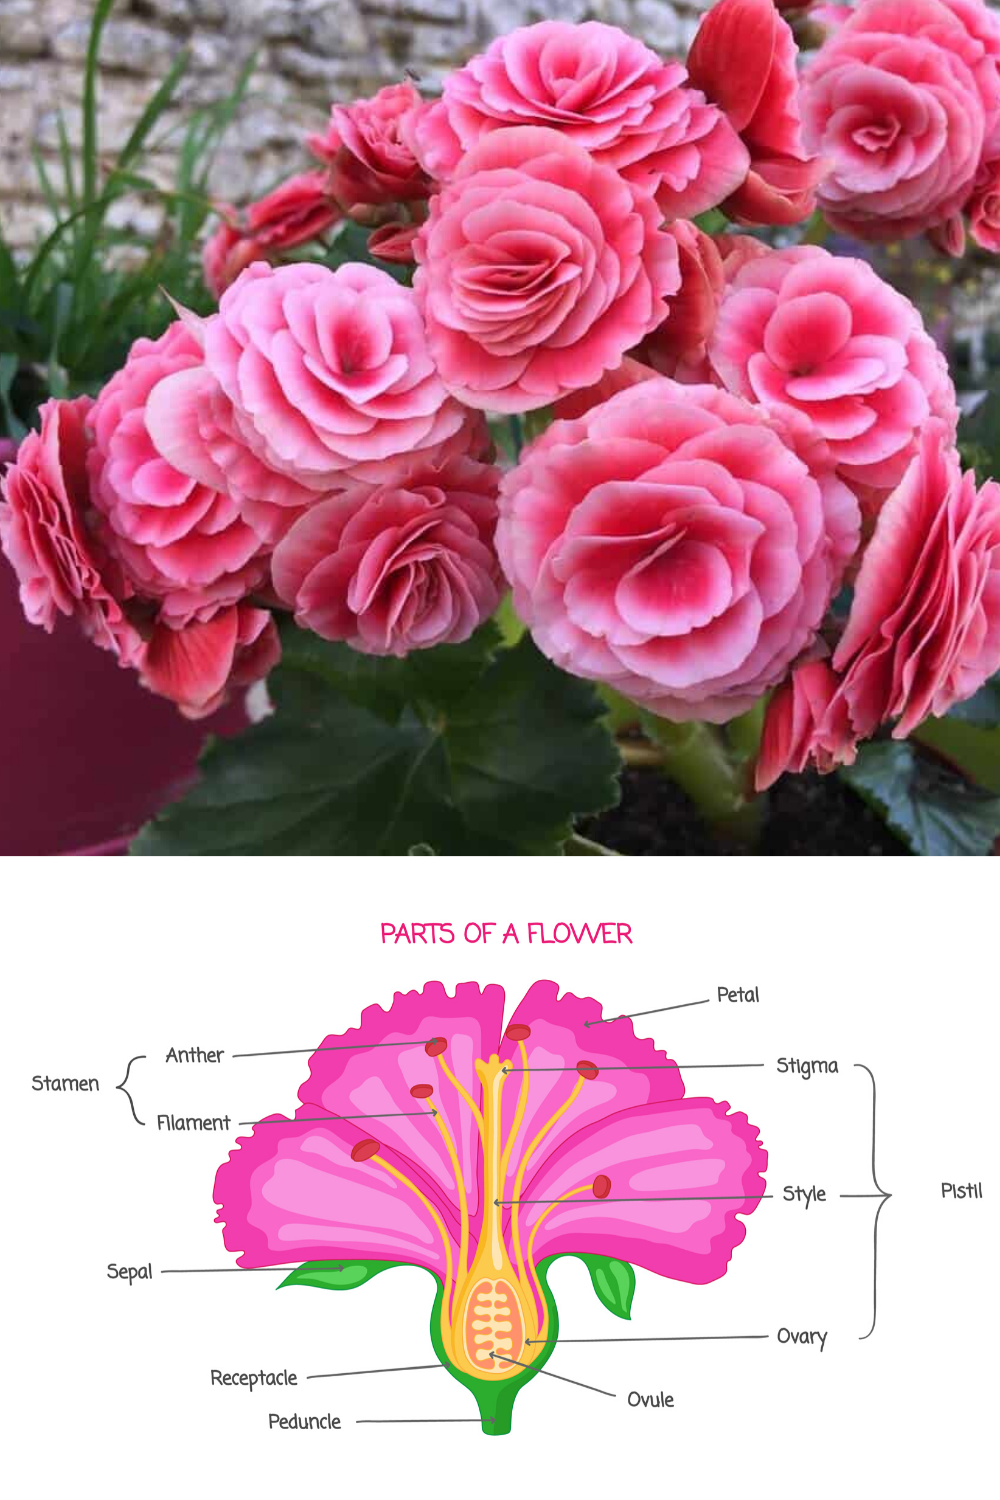 30 Types Of Pink And Fuchsia Flowers A Z Photos In 2020 Parts Of A Flower Flowers Fuchsia Flowers